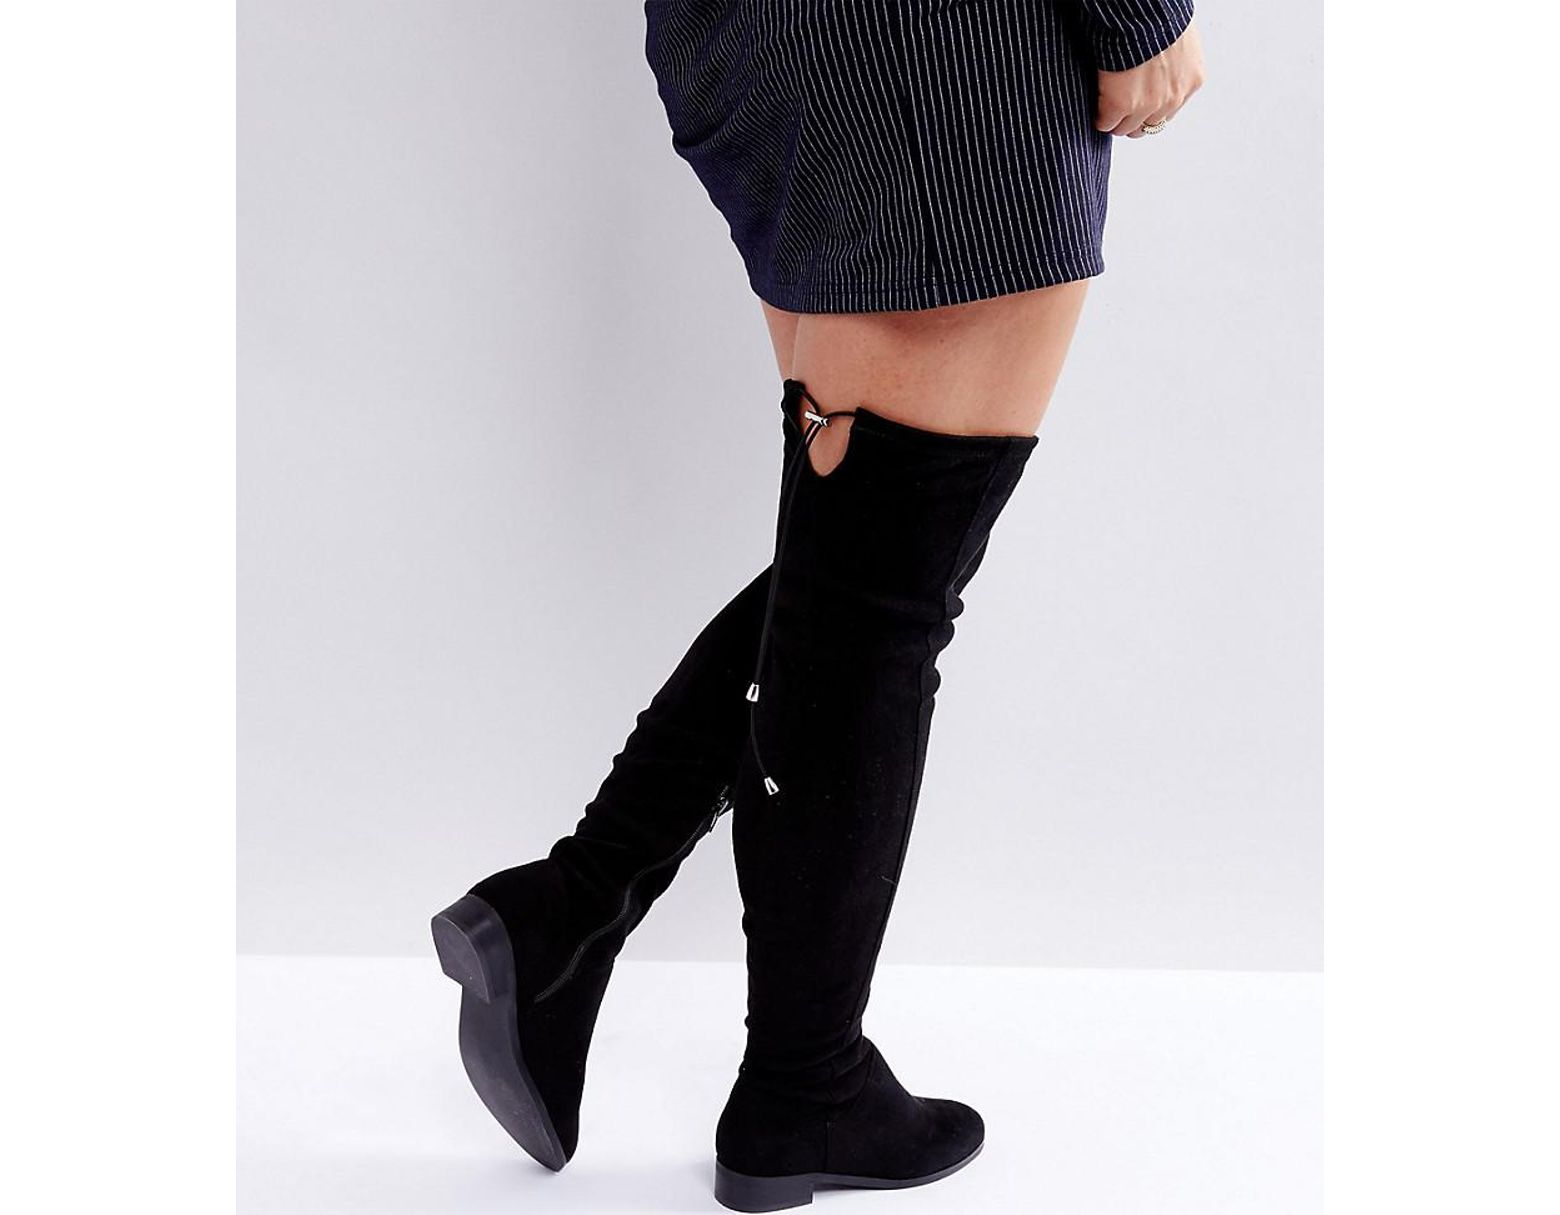 eac1f0586f9 Women's Black Keep Up Wide Fit Tall Over The Knee Boots